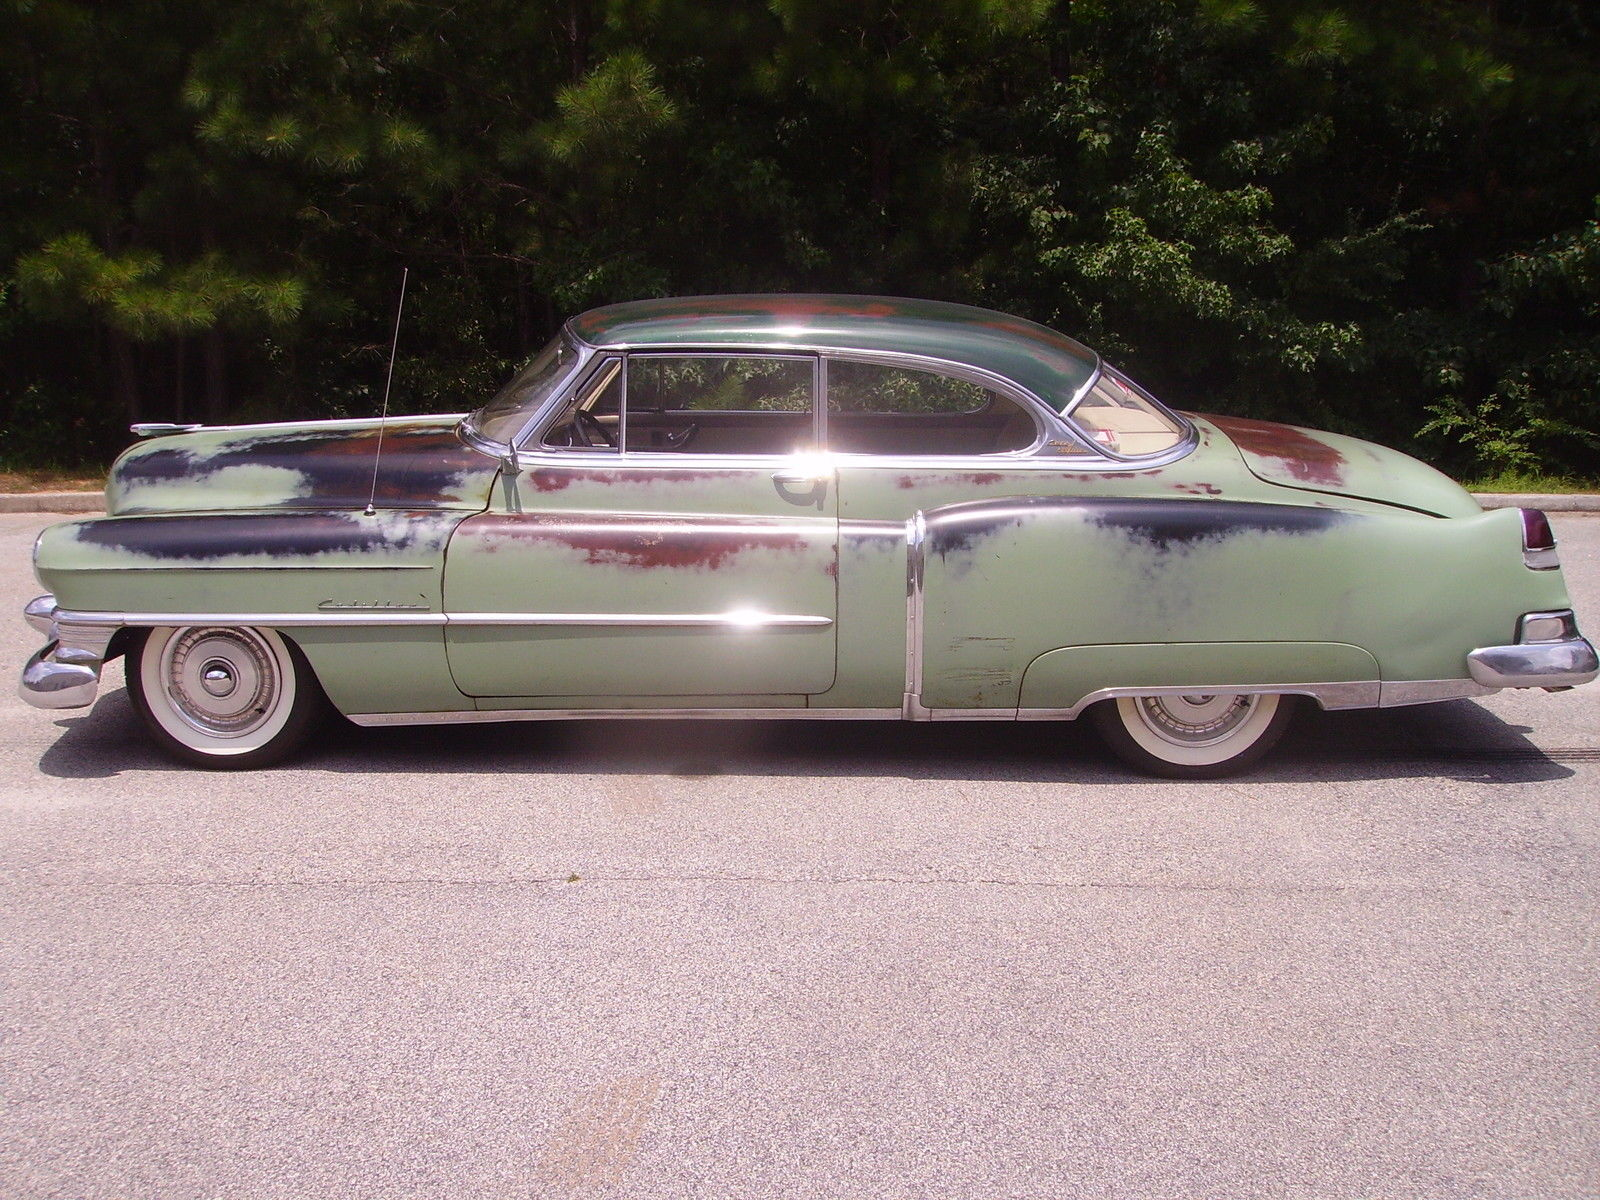 1951 Cadillac Deville Crate 350 Engine P S B A C New Interior Nova Series 62 Coupe